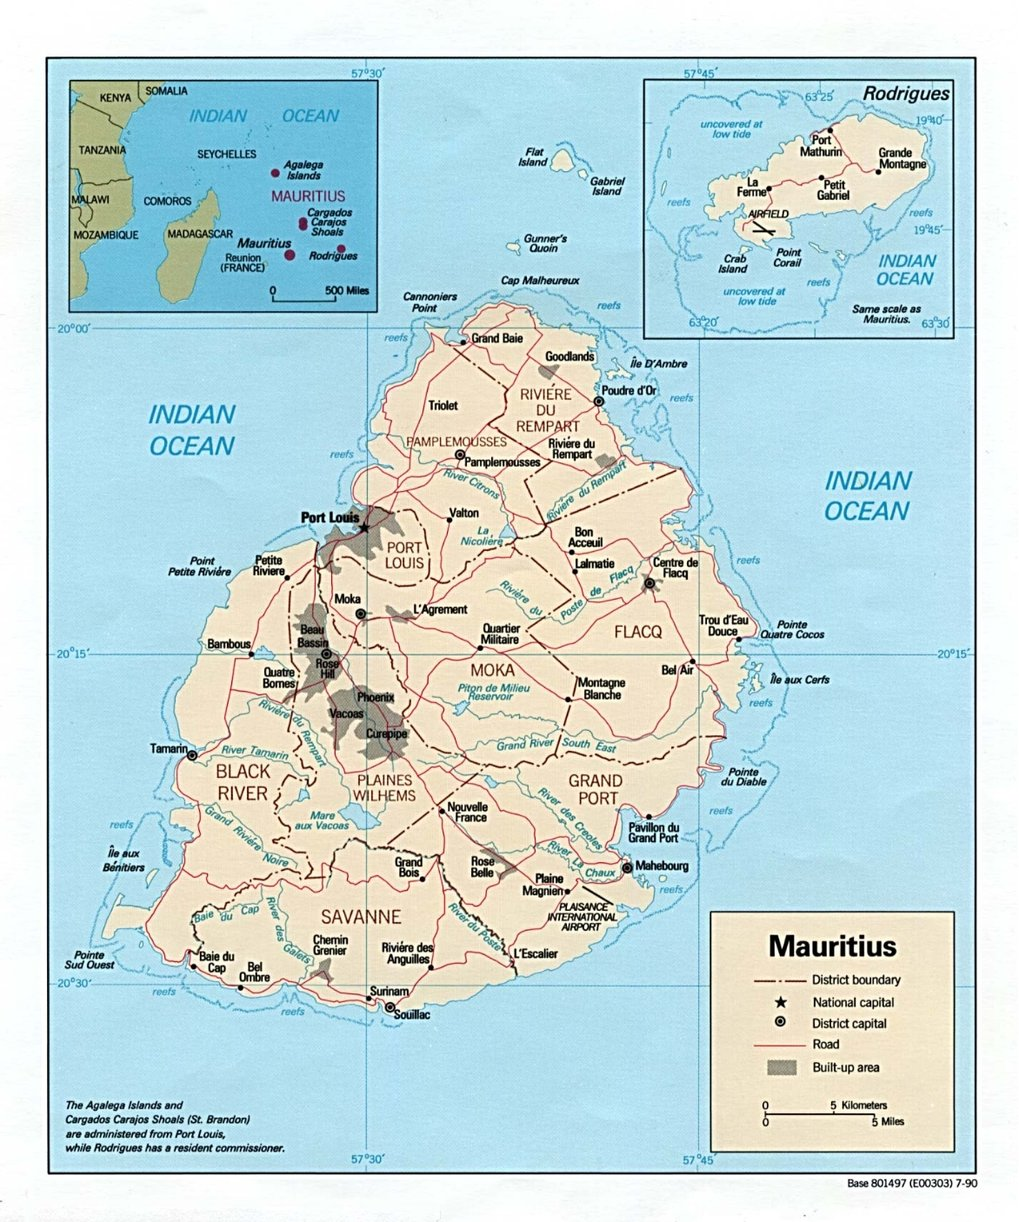 Political Map of Mauritius(Source: http://www.weltkarte.com/afrika/mauritius/landkarte-mauritius.htm - Public Domain Map)